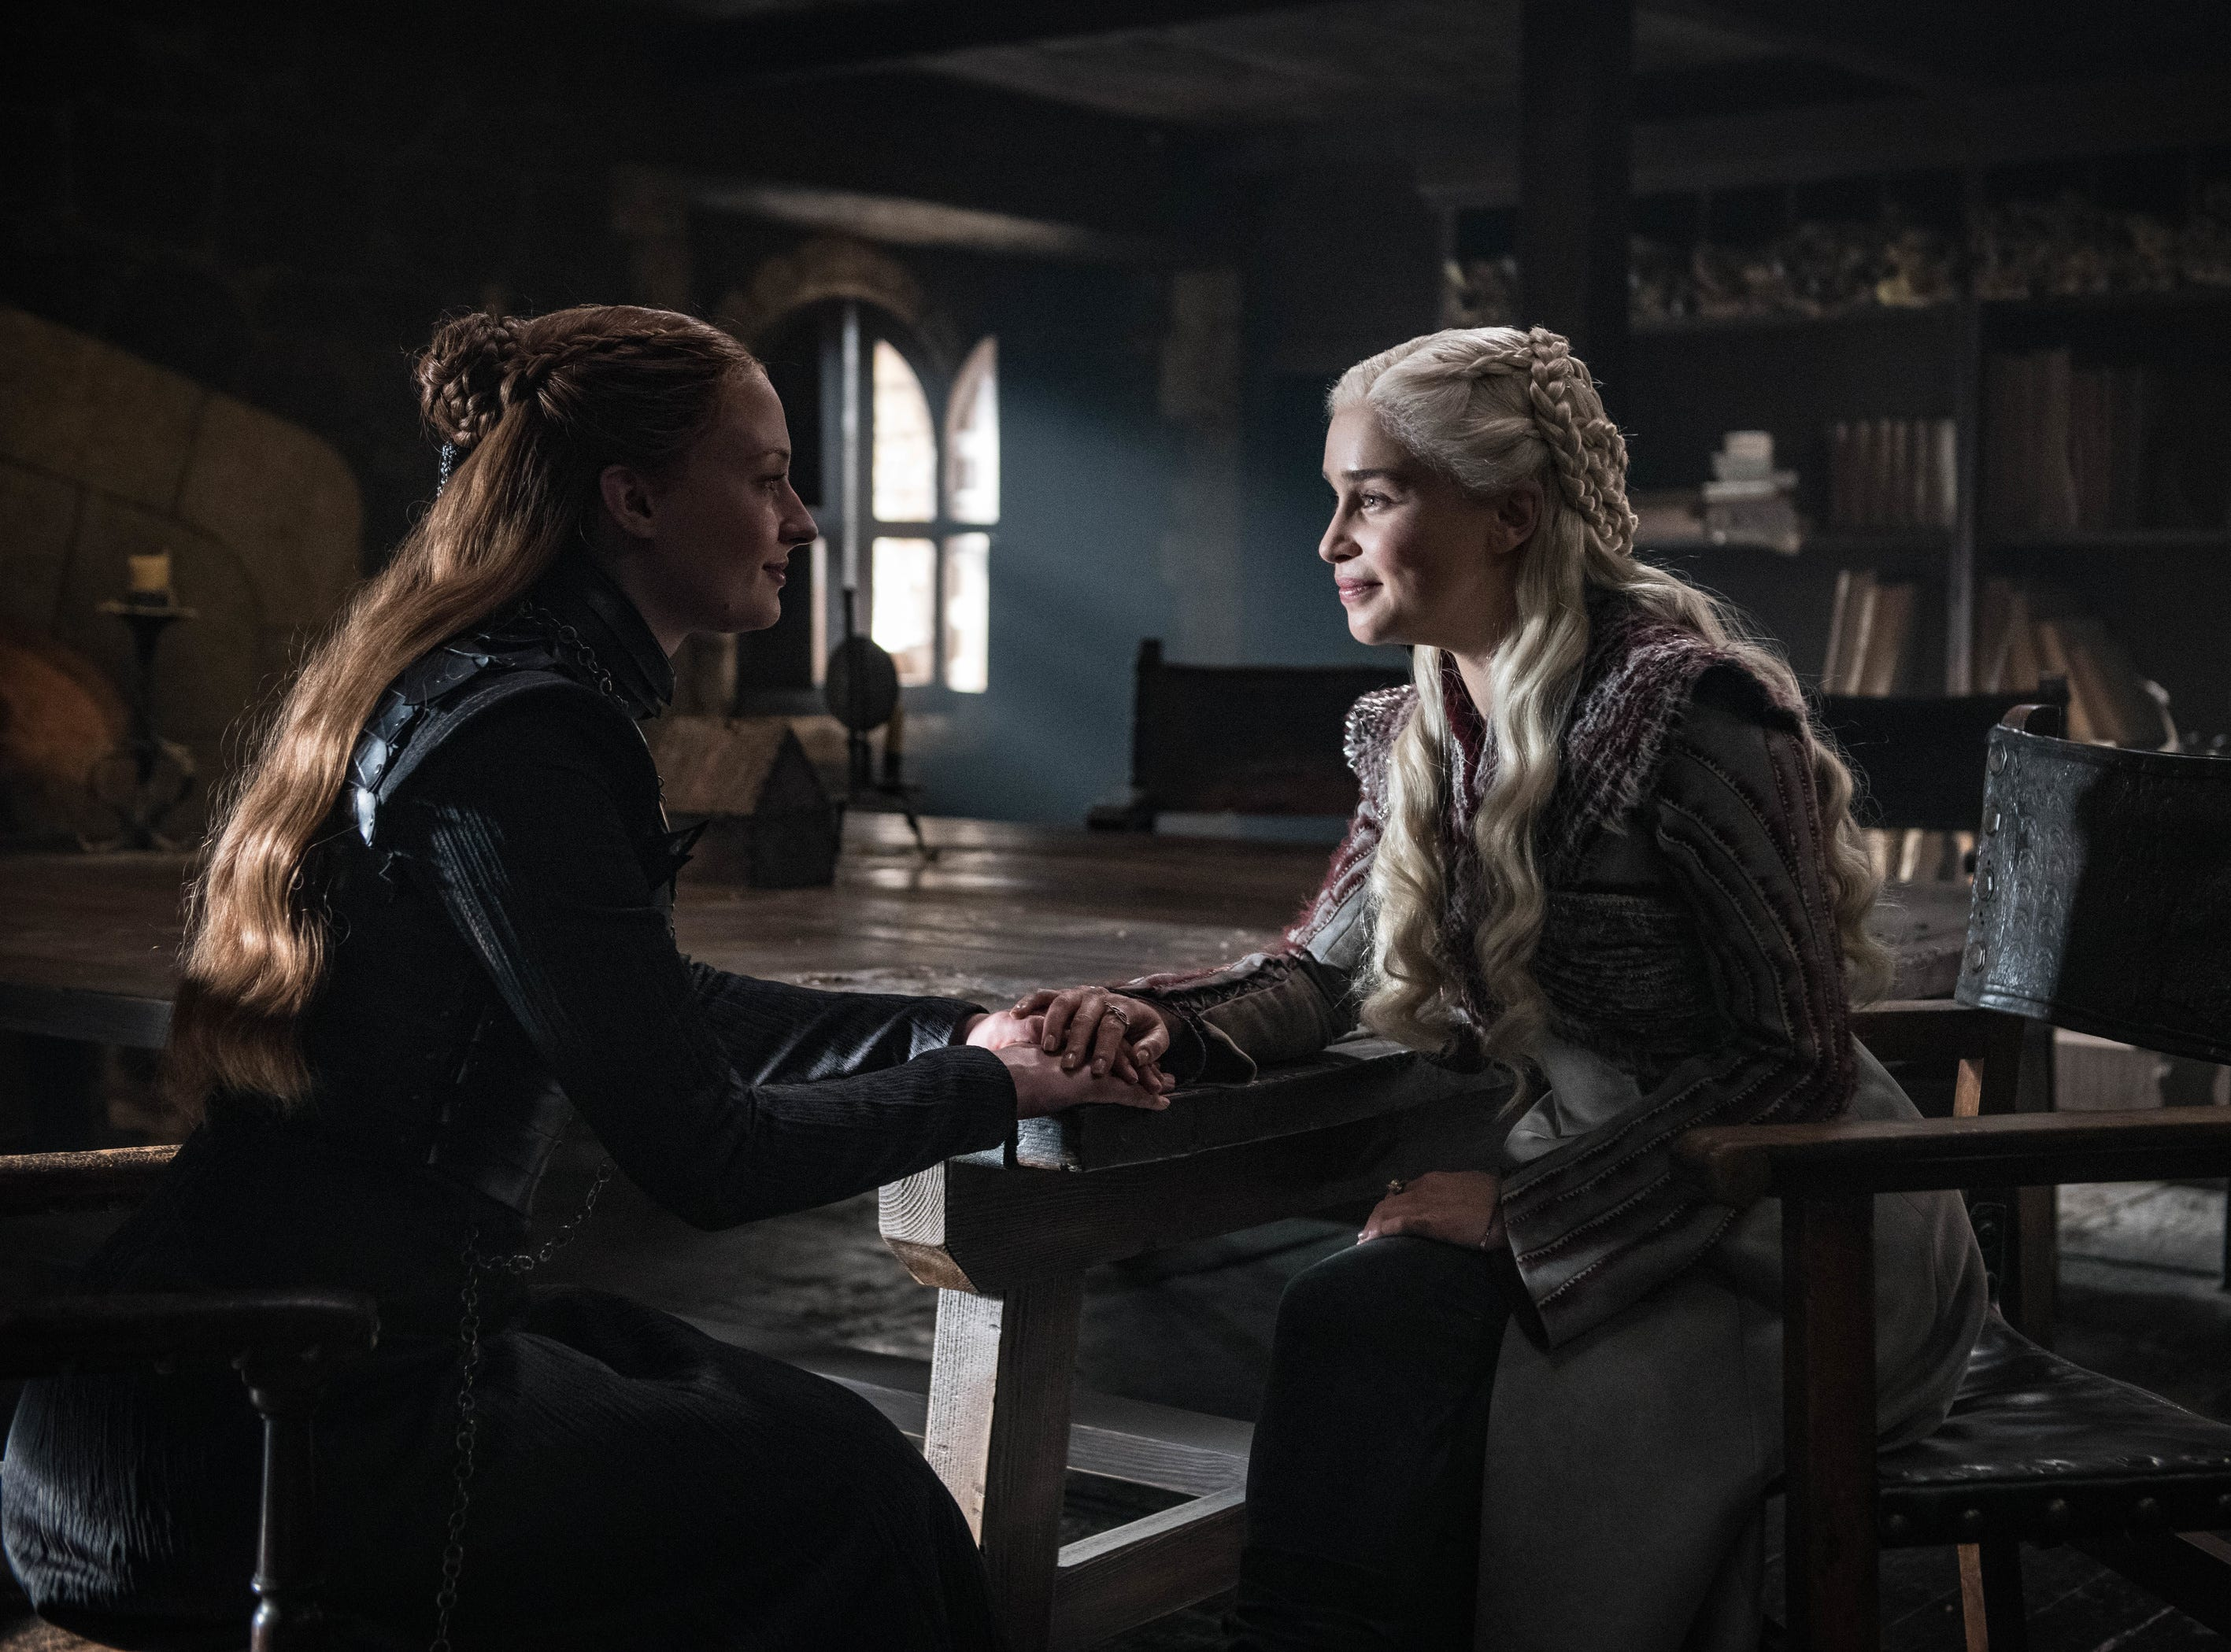 Sophie Turner as Sansa Stark, left, and Emilia Clarke as Daenerys Targaryen on HBO's 'Game of Thrones.'